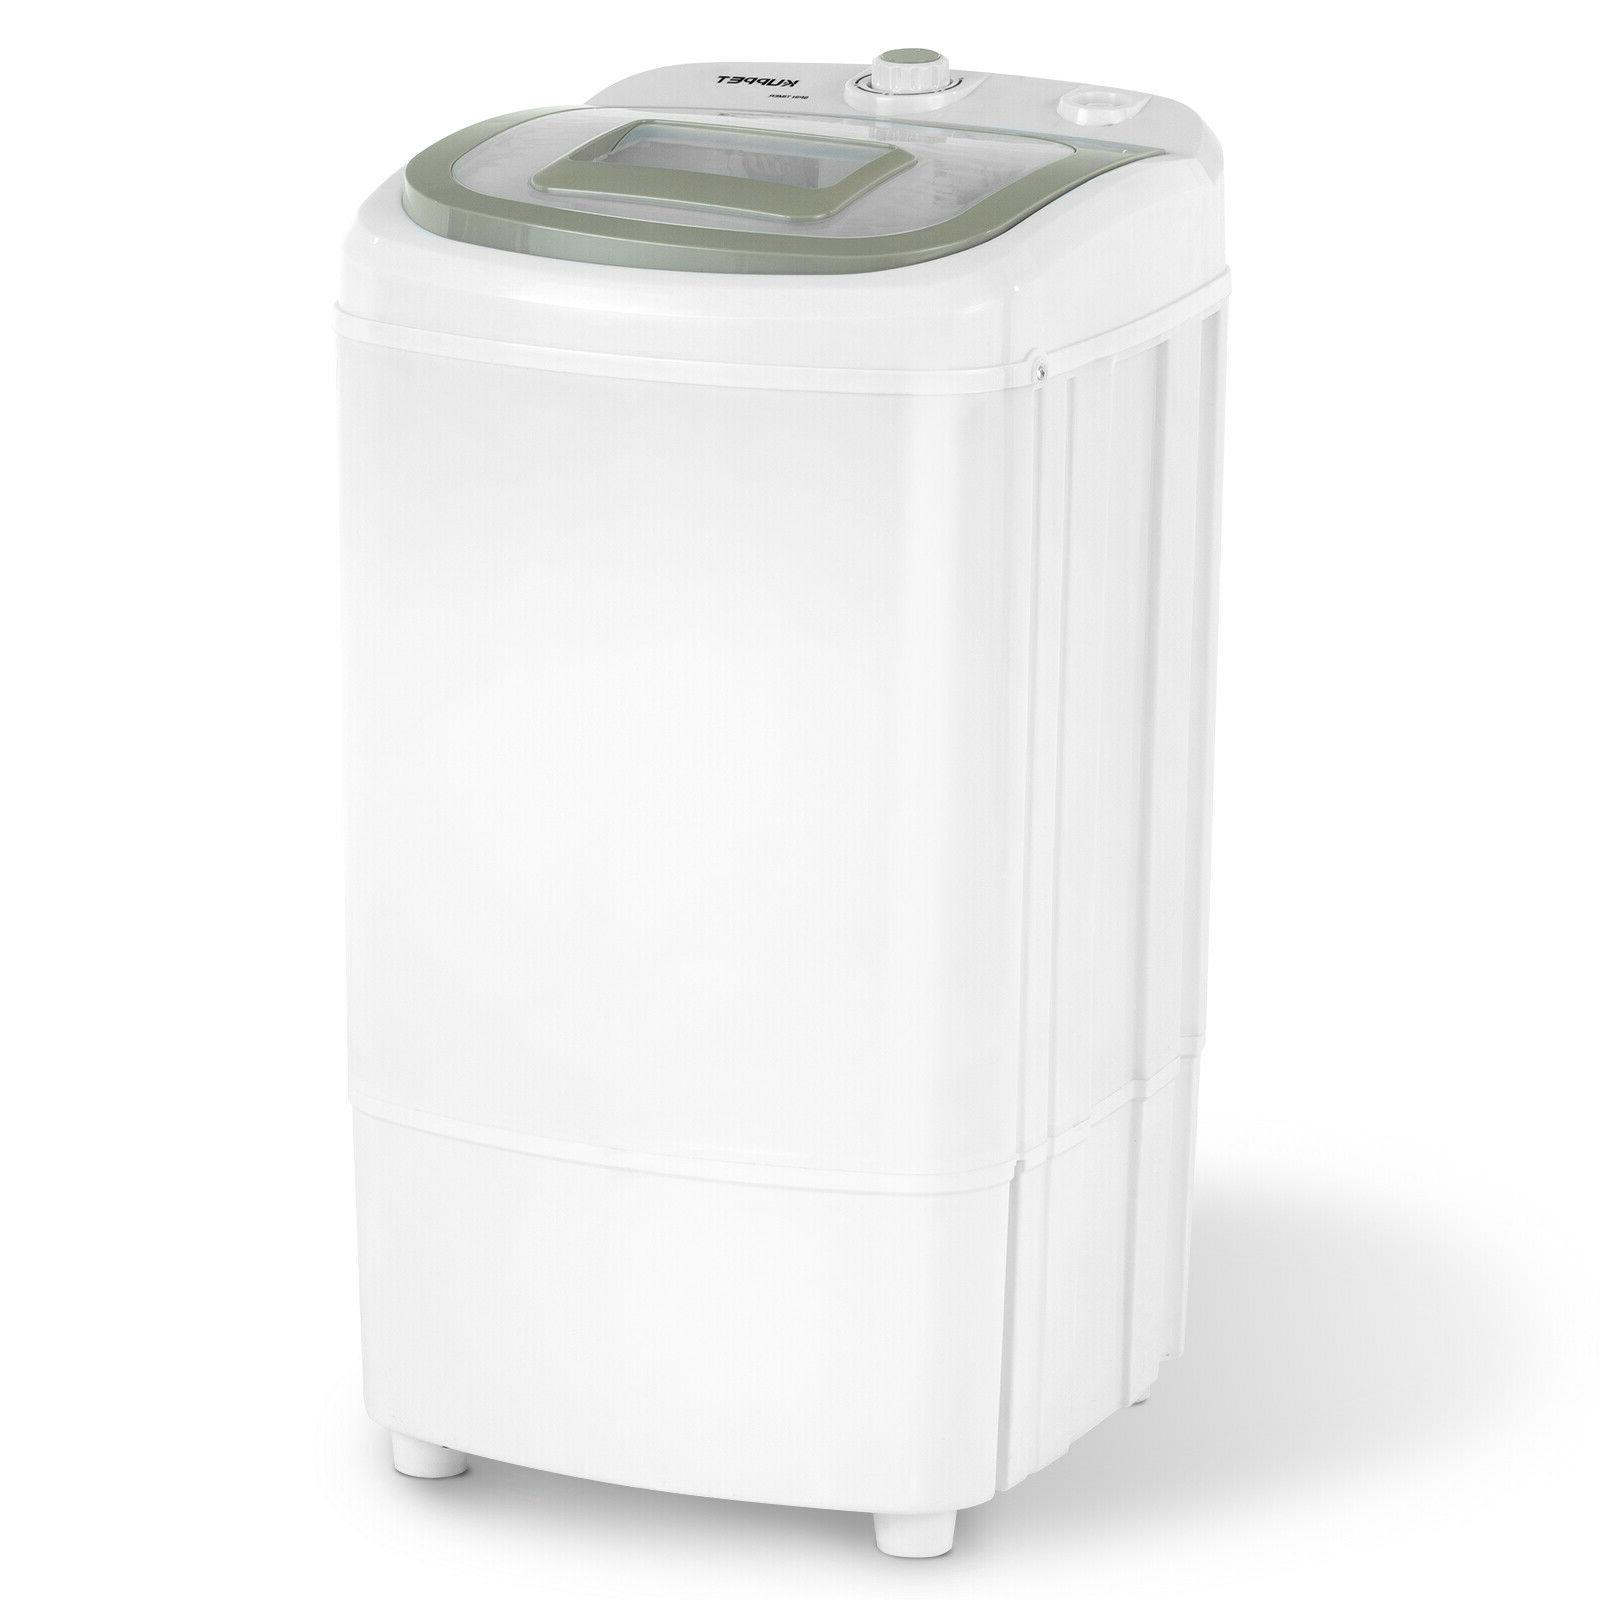 17.6 LBS RPM Laundry White